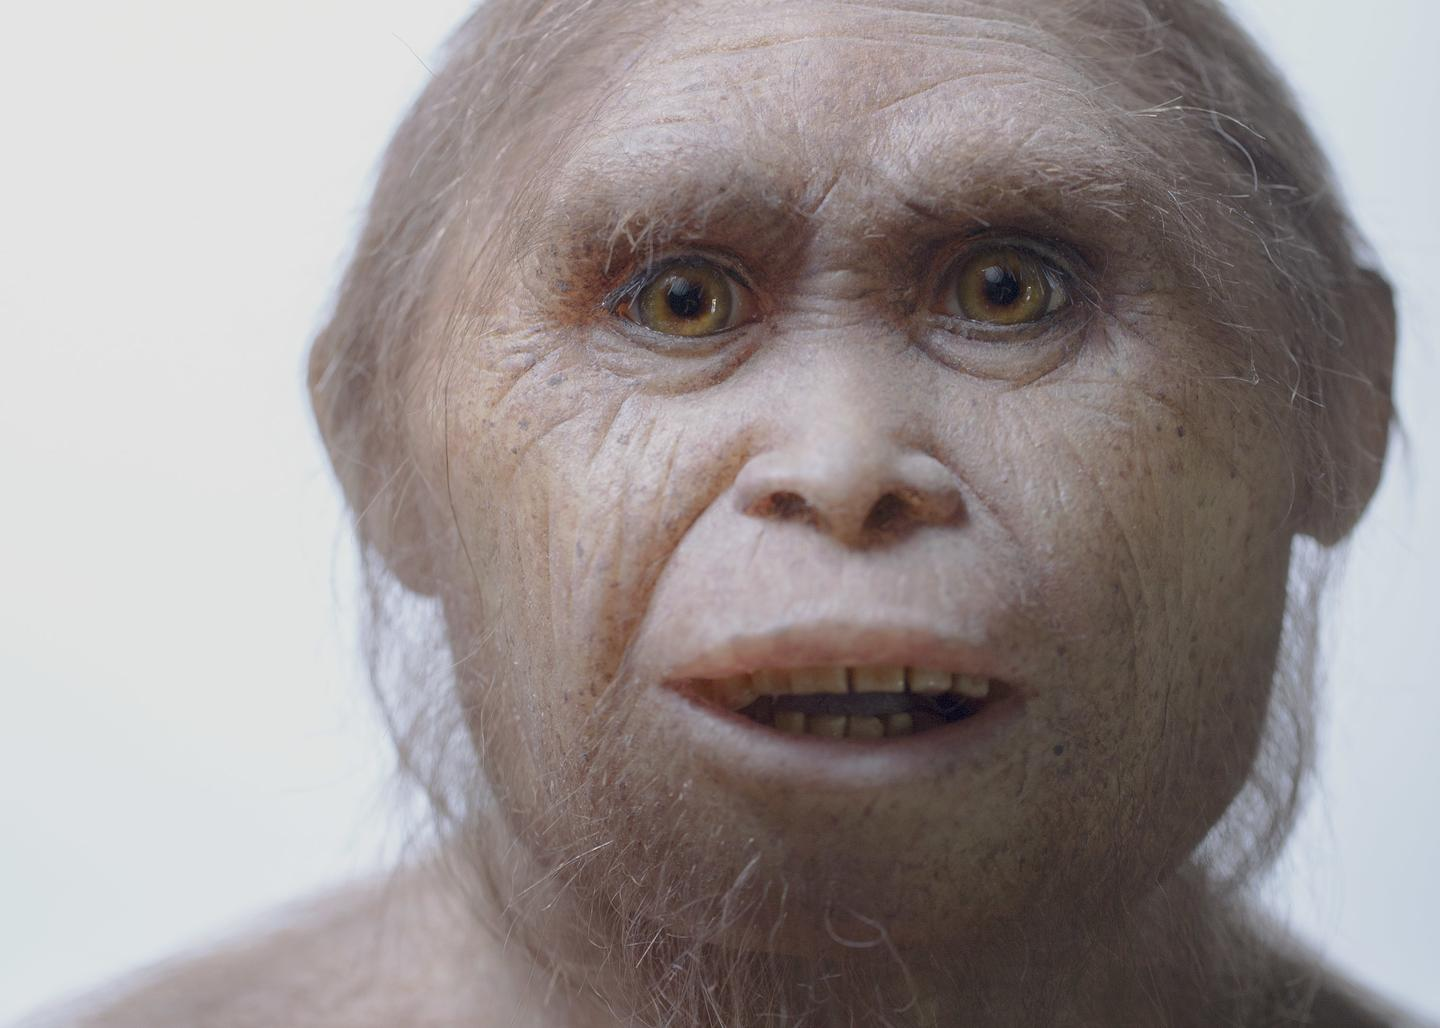 Fast Evolution Explains Why Our 'Hobbit' Ancestors Were Short